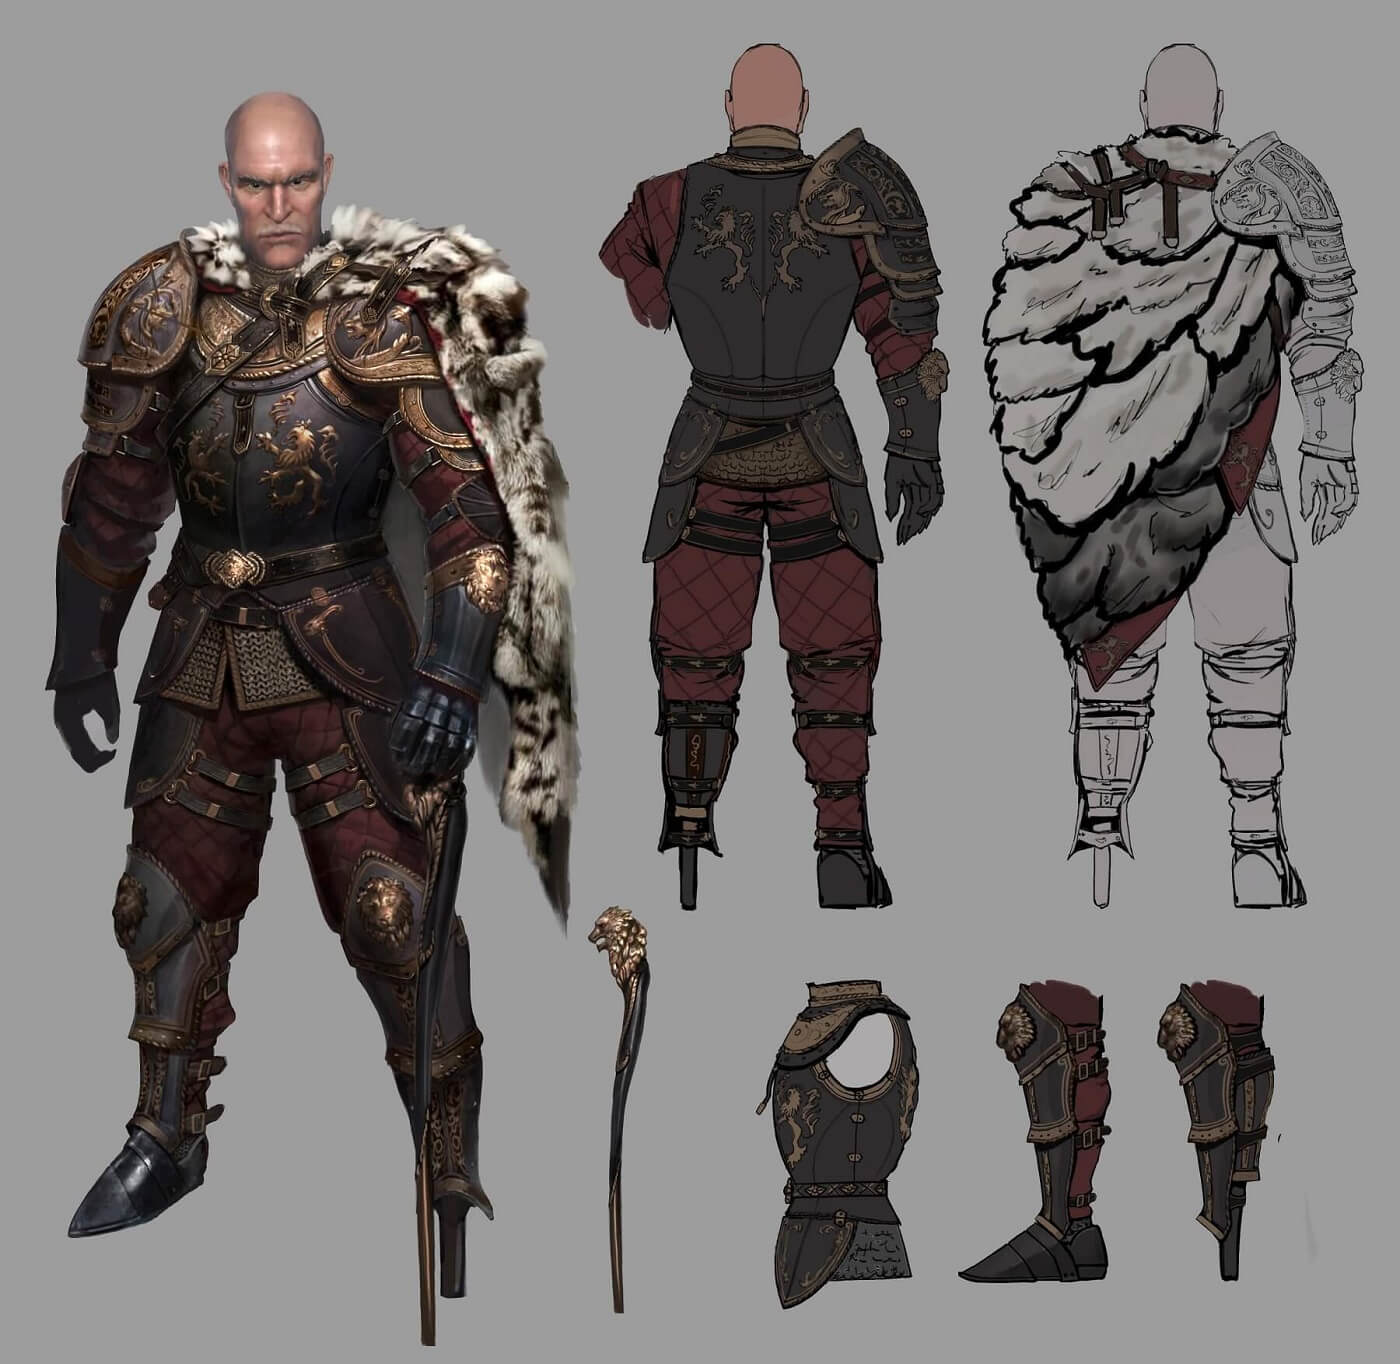 Ascent-Infinite-Realm-Concept-Art-General-Cruz-Axis-Character-Design